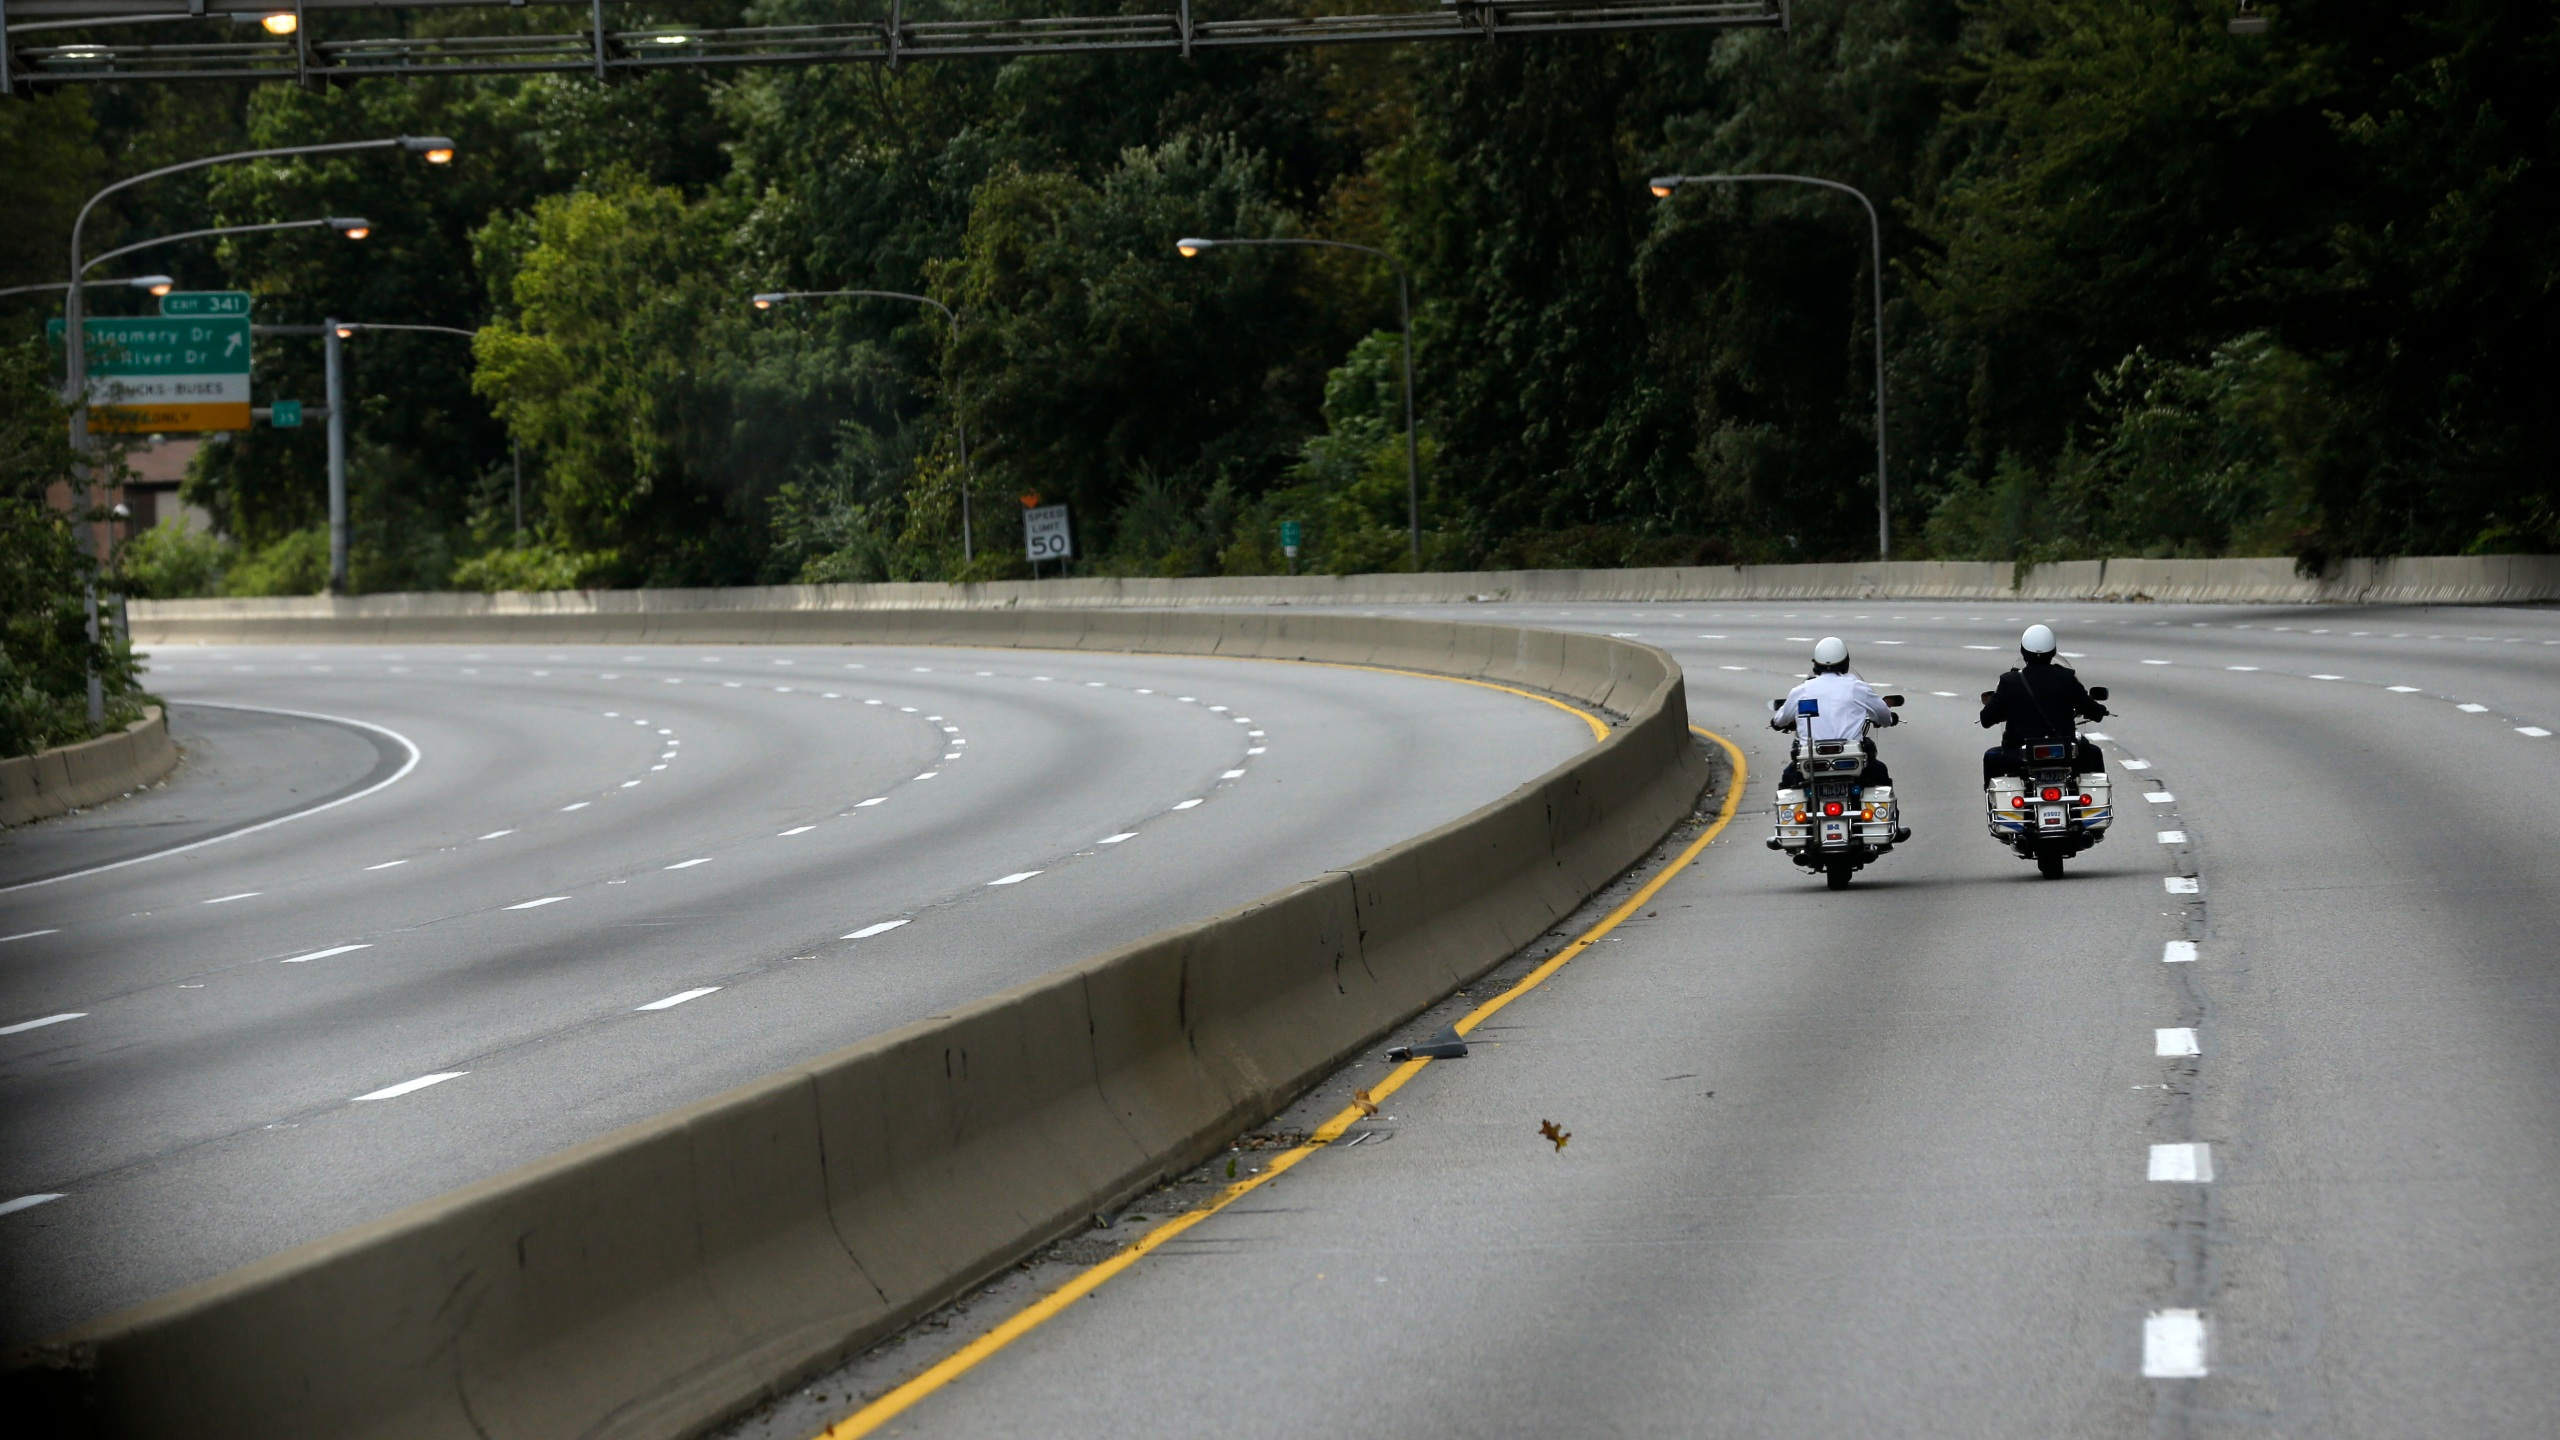 Motorcycle_Safety_63323-159532.jpg63569641